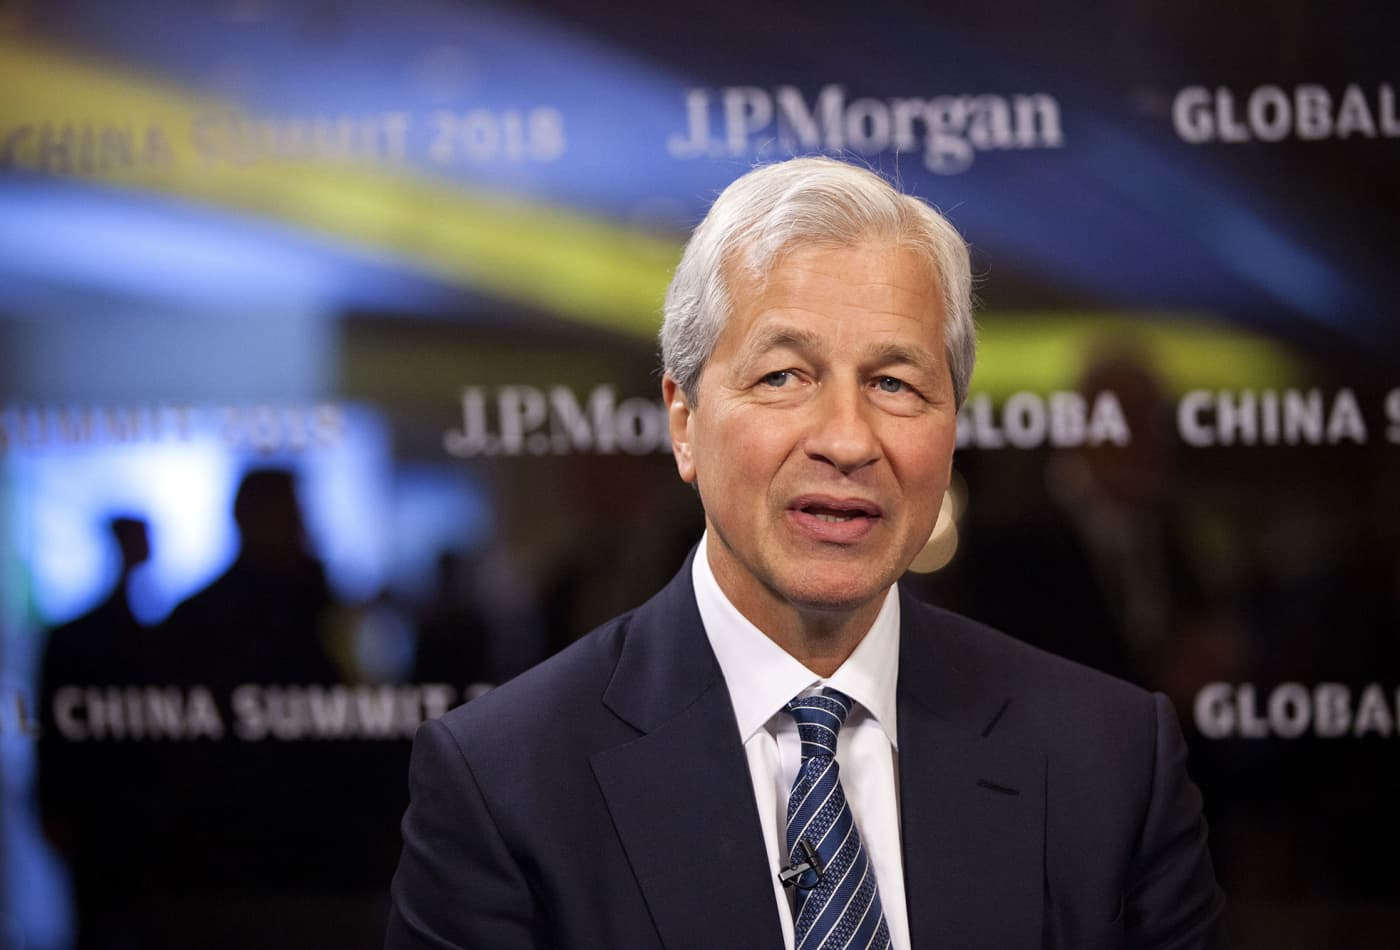 JPMorgan CEO Jamie Dimon: People with these traits succeed–'not the smartest or hardest-working in the room'